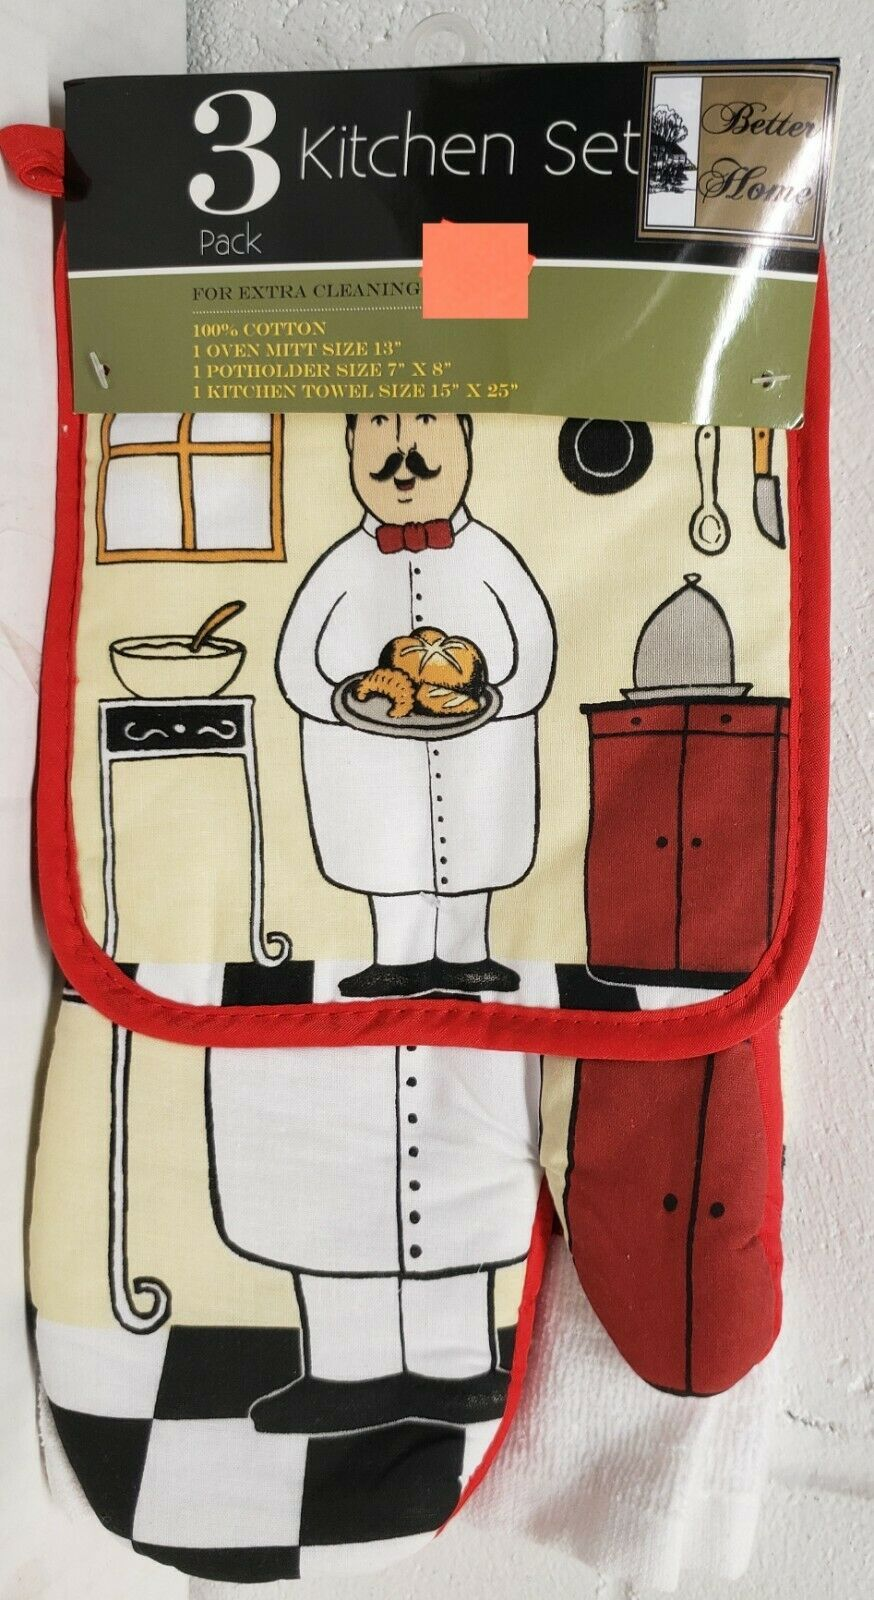 Primary image for 3 pc KITCHEN SET: 1 POT HOLDER, 1 TOWEL & 1 OVEN MITT, FAT CHEF WITH PASTRIES,BH